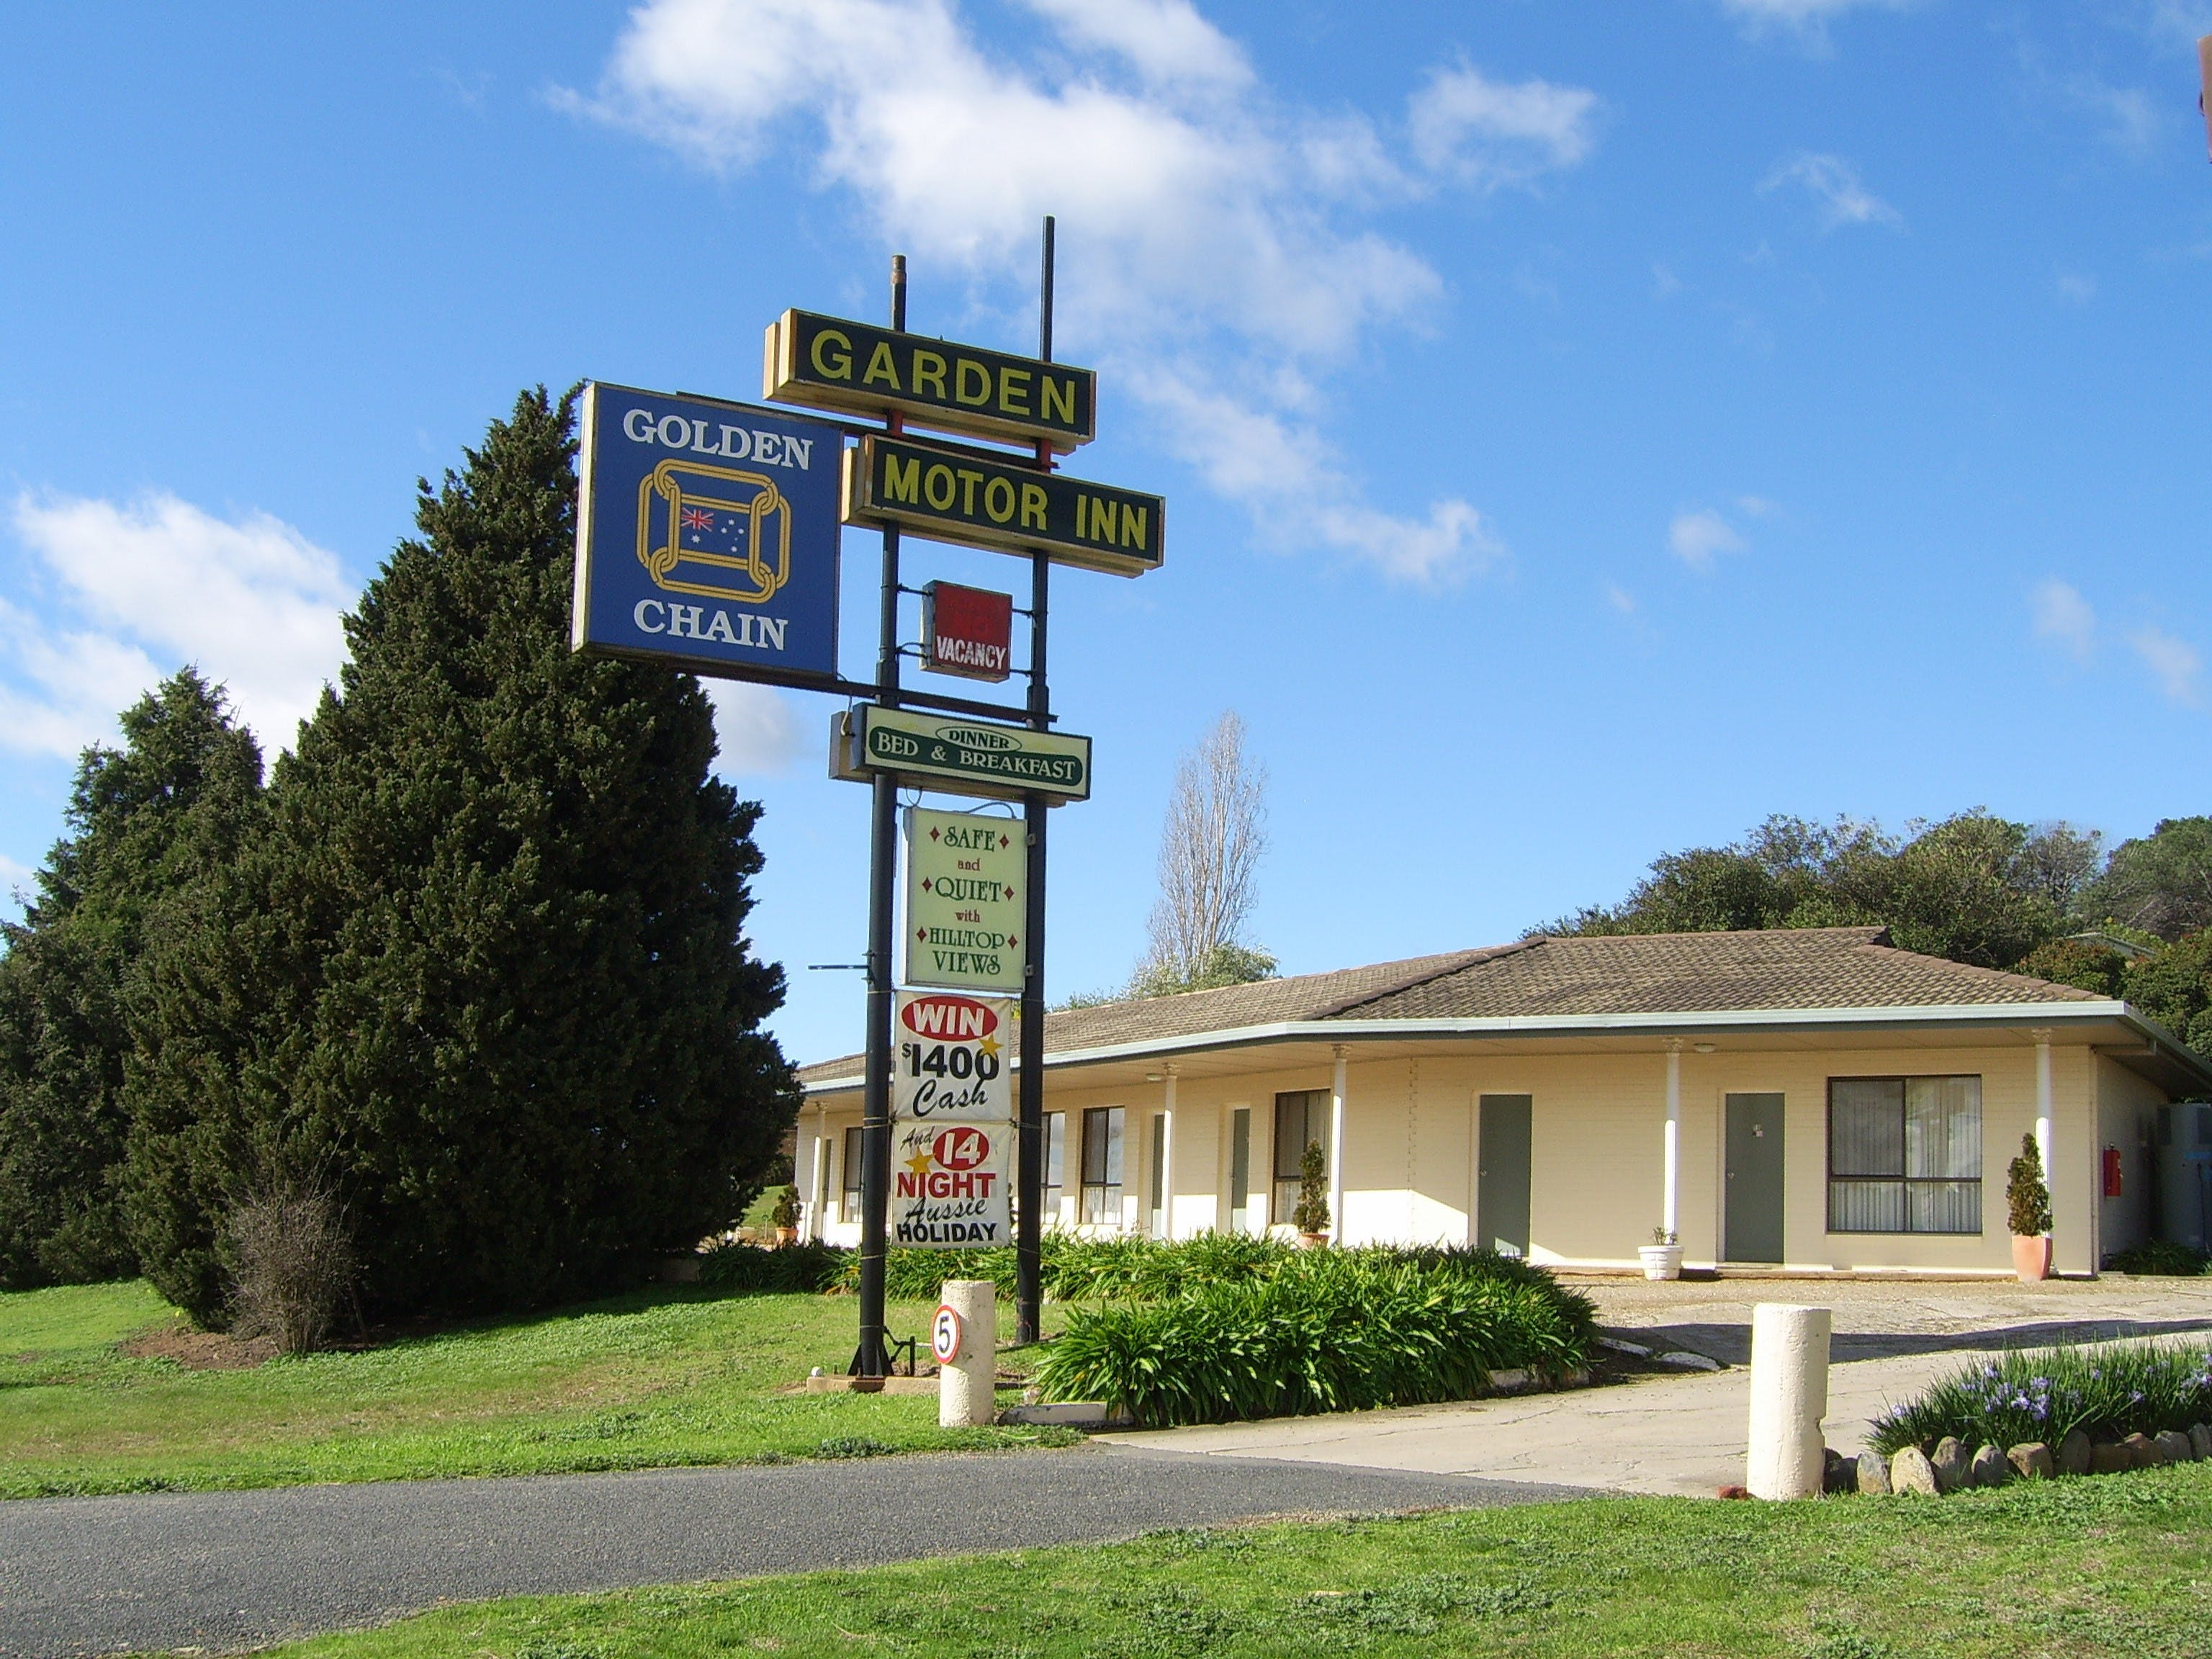 Garden Motor Inn Golden Chain - Mount Gambier Accommodation